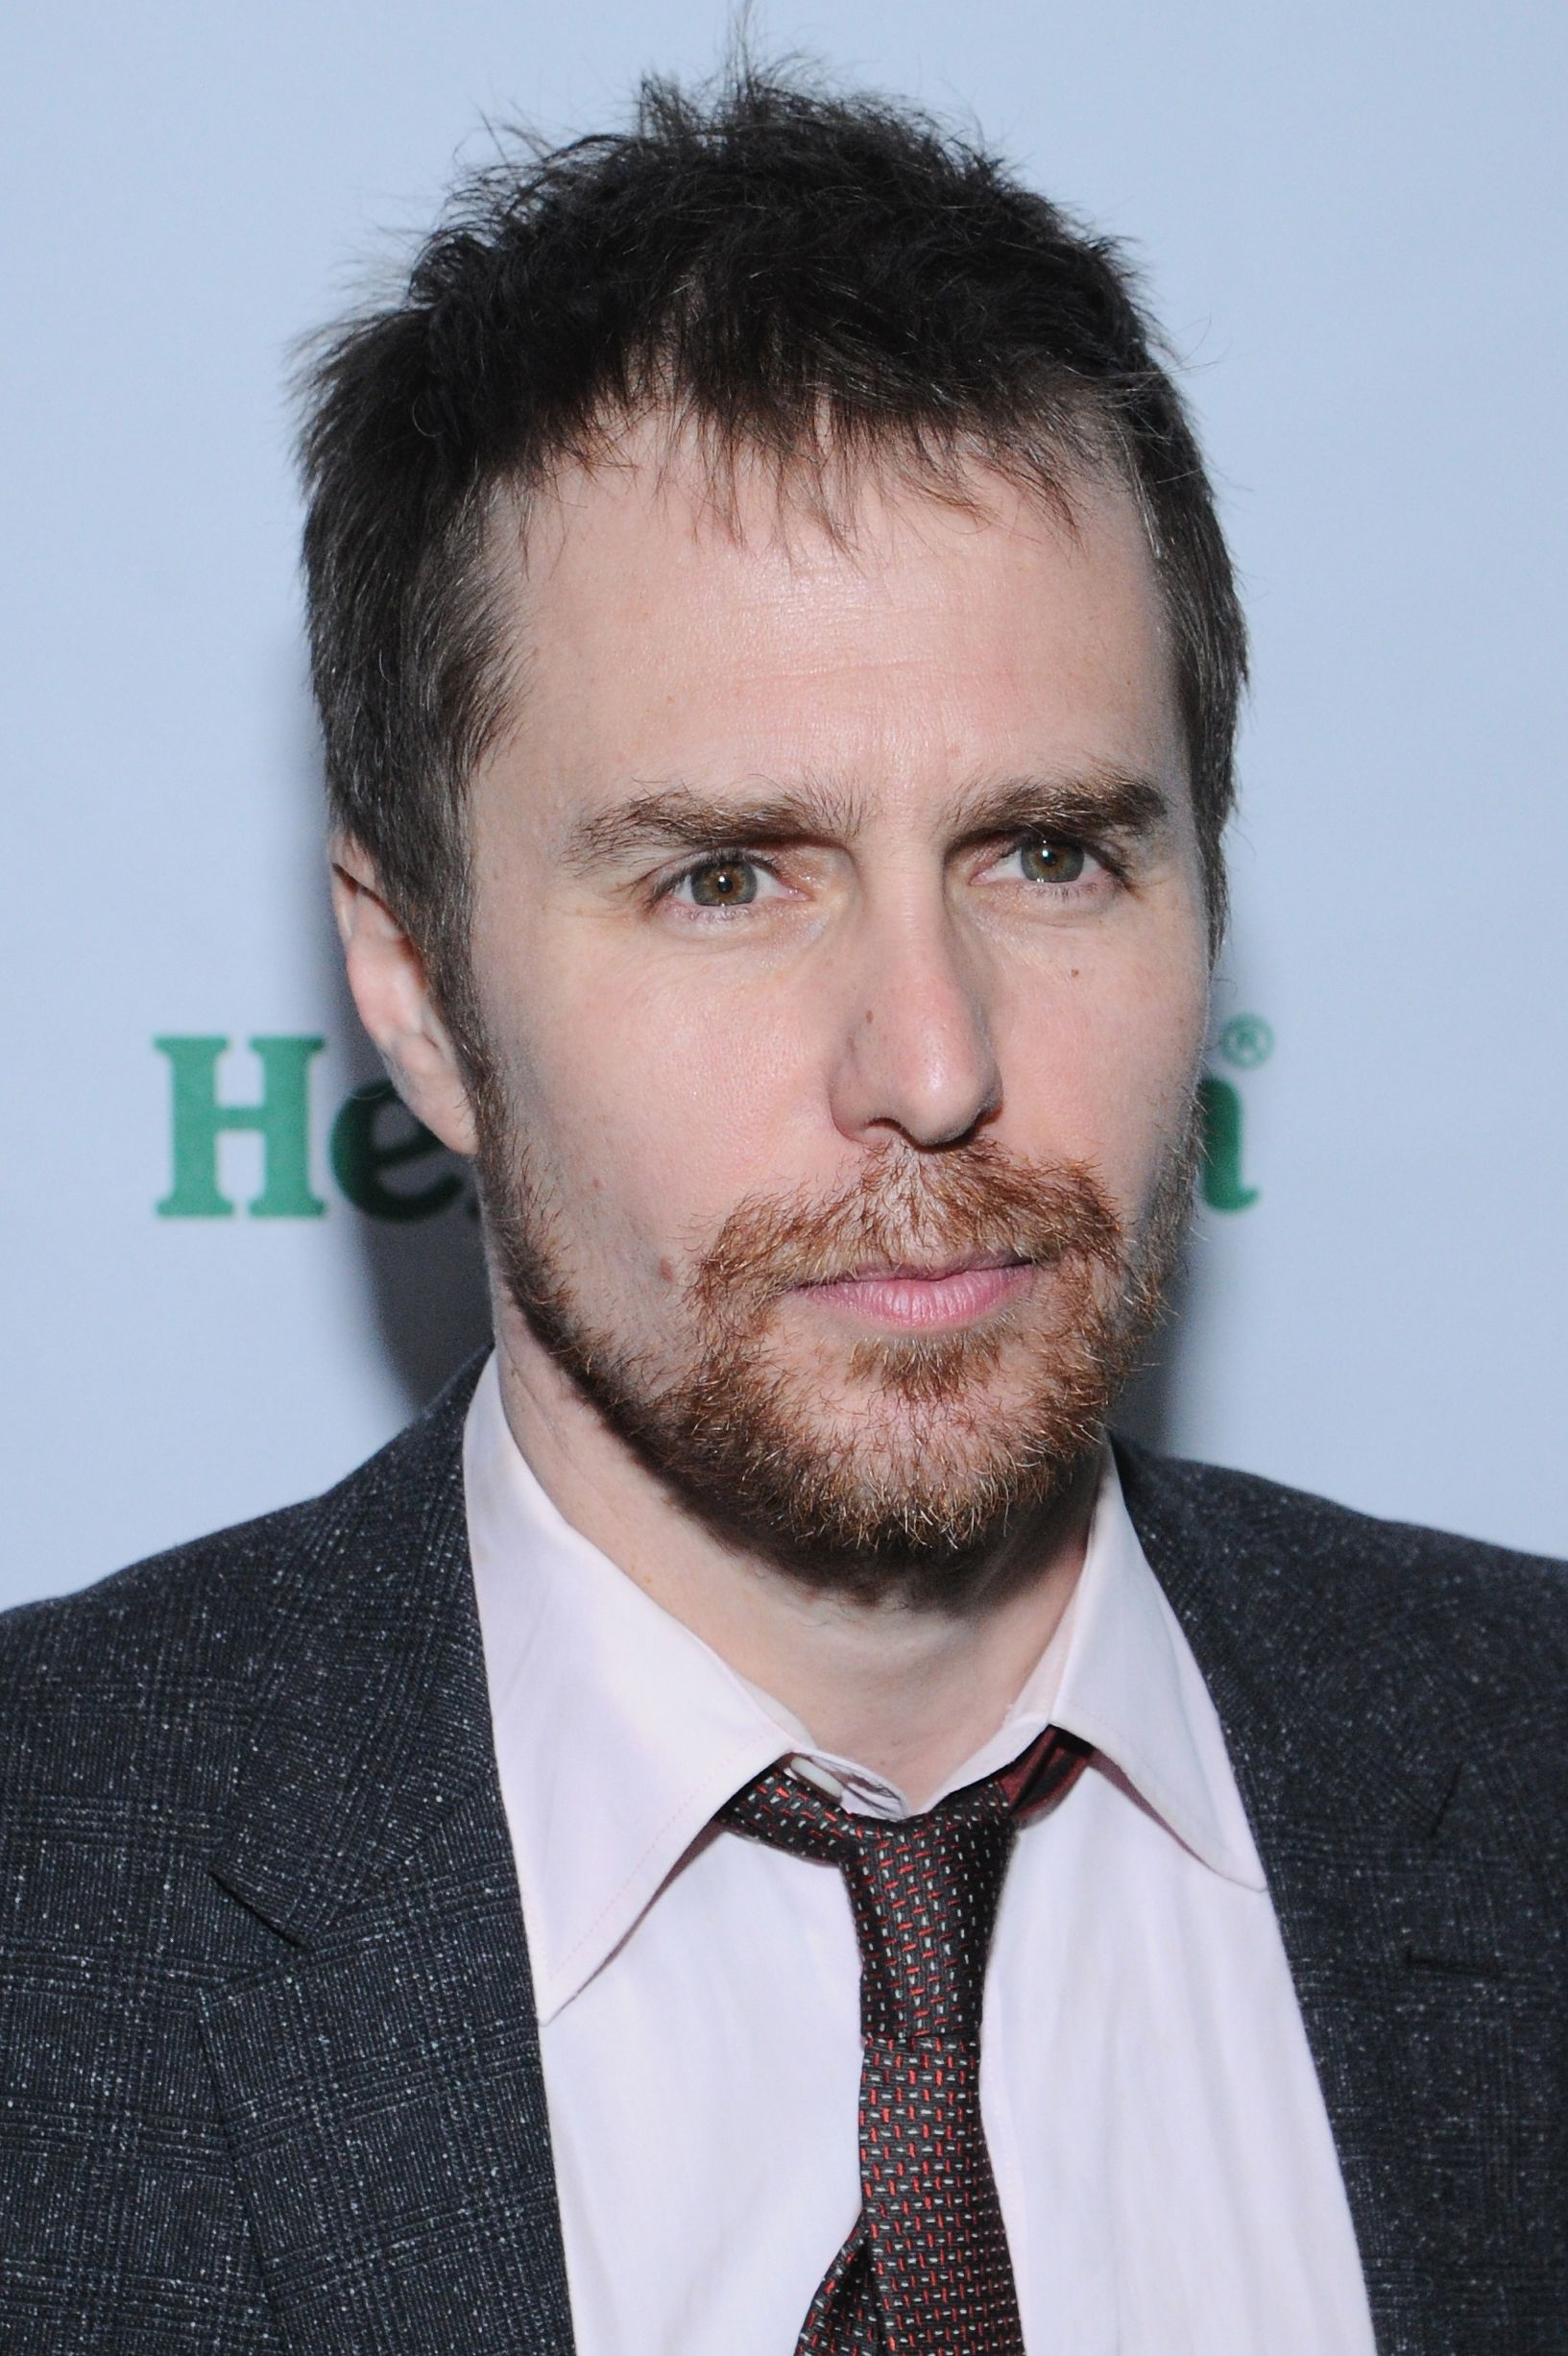 Sam Rockwell wallpapers, Celebrity, HQ Sam Rockwell pictures | 4K ...